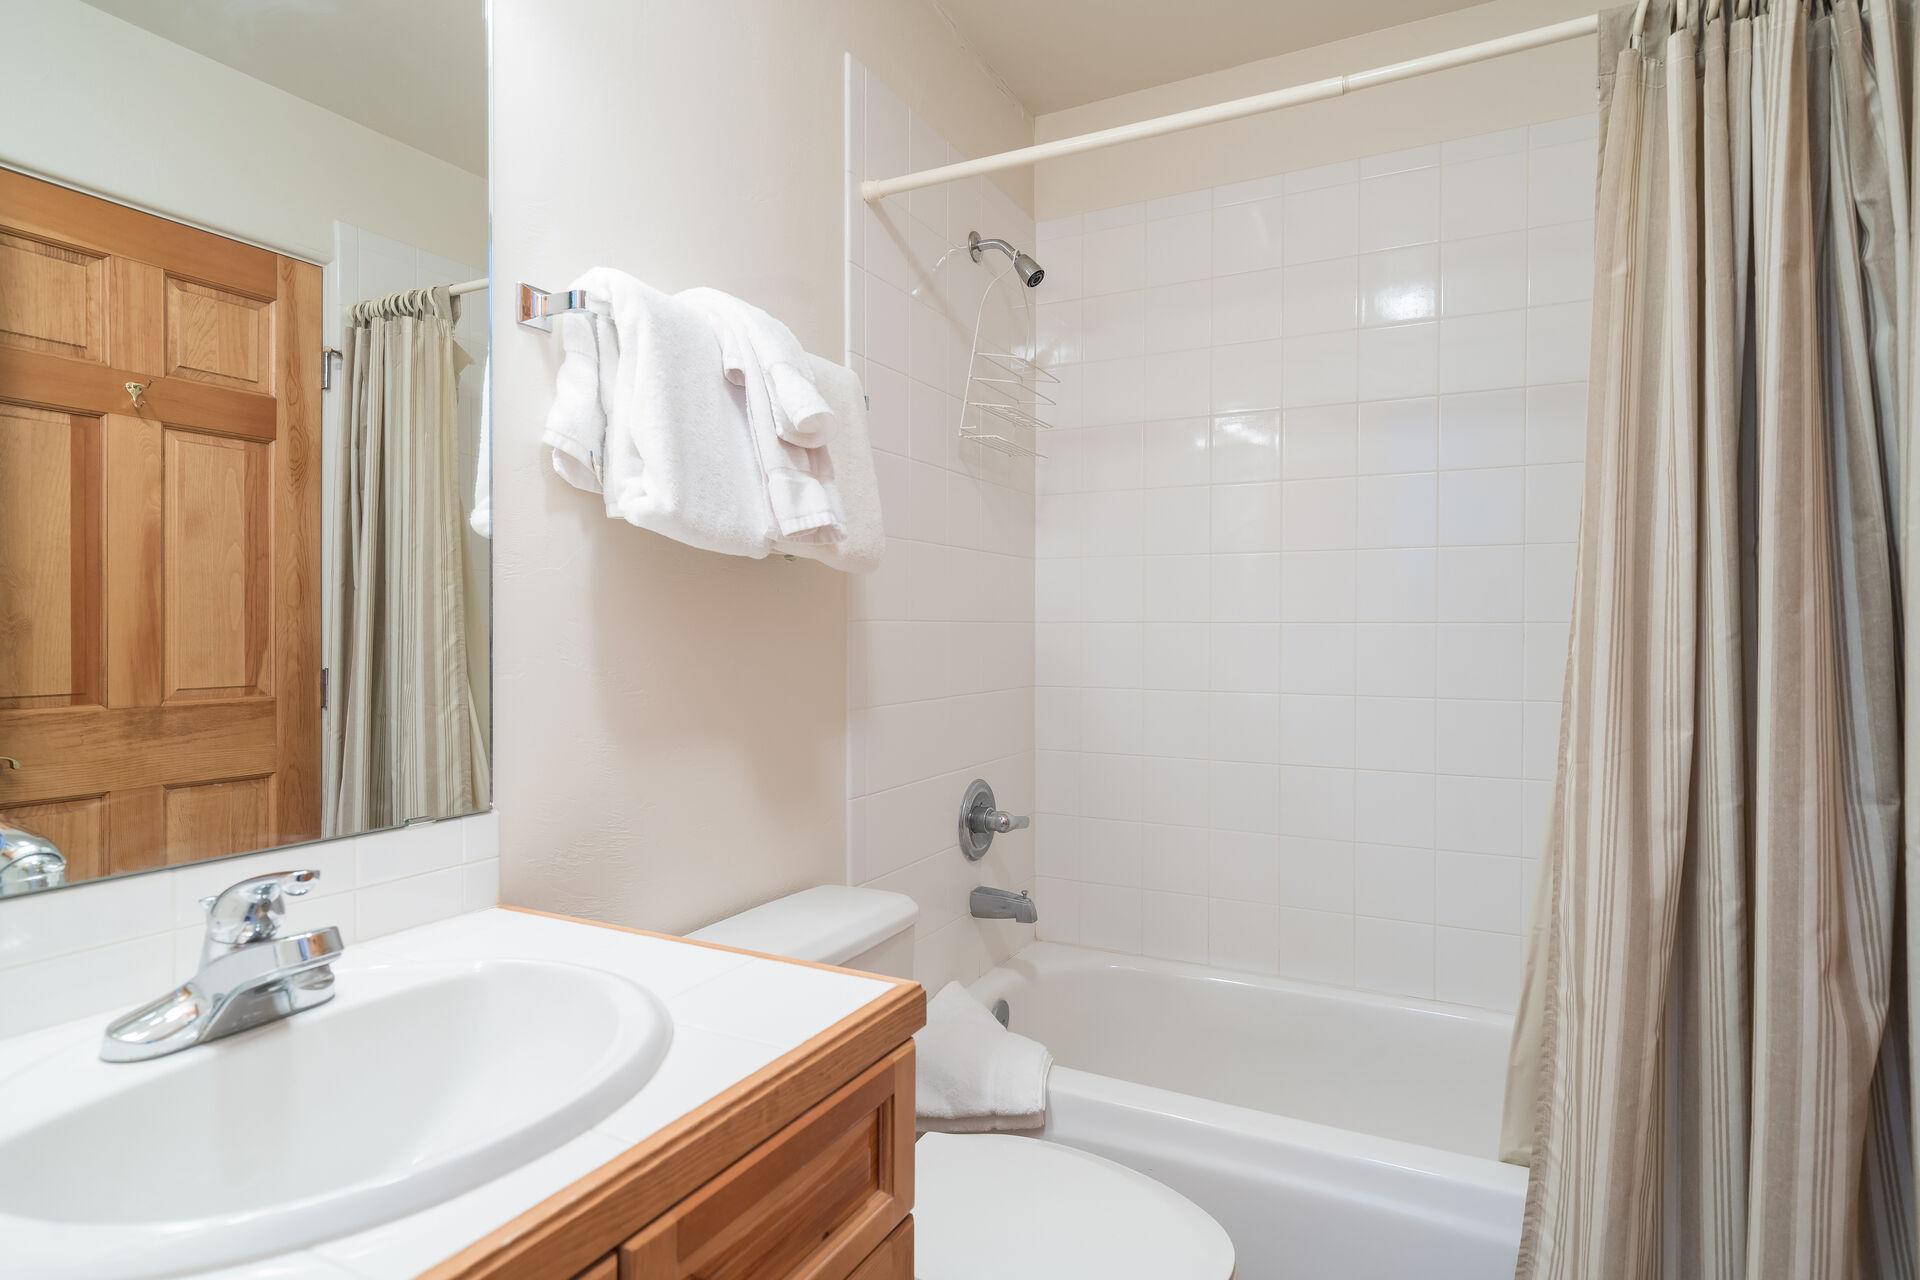 Bathroom with Vanity and Shower/Tub Combo